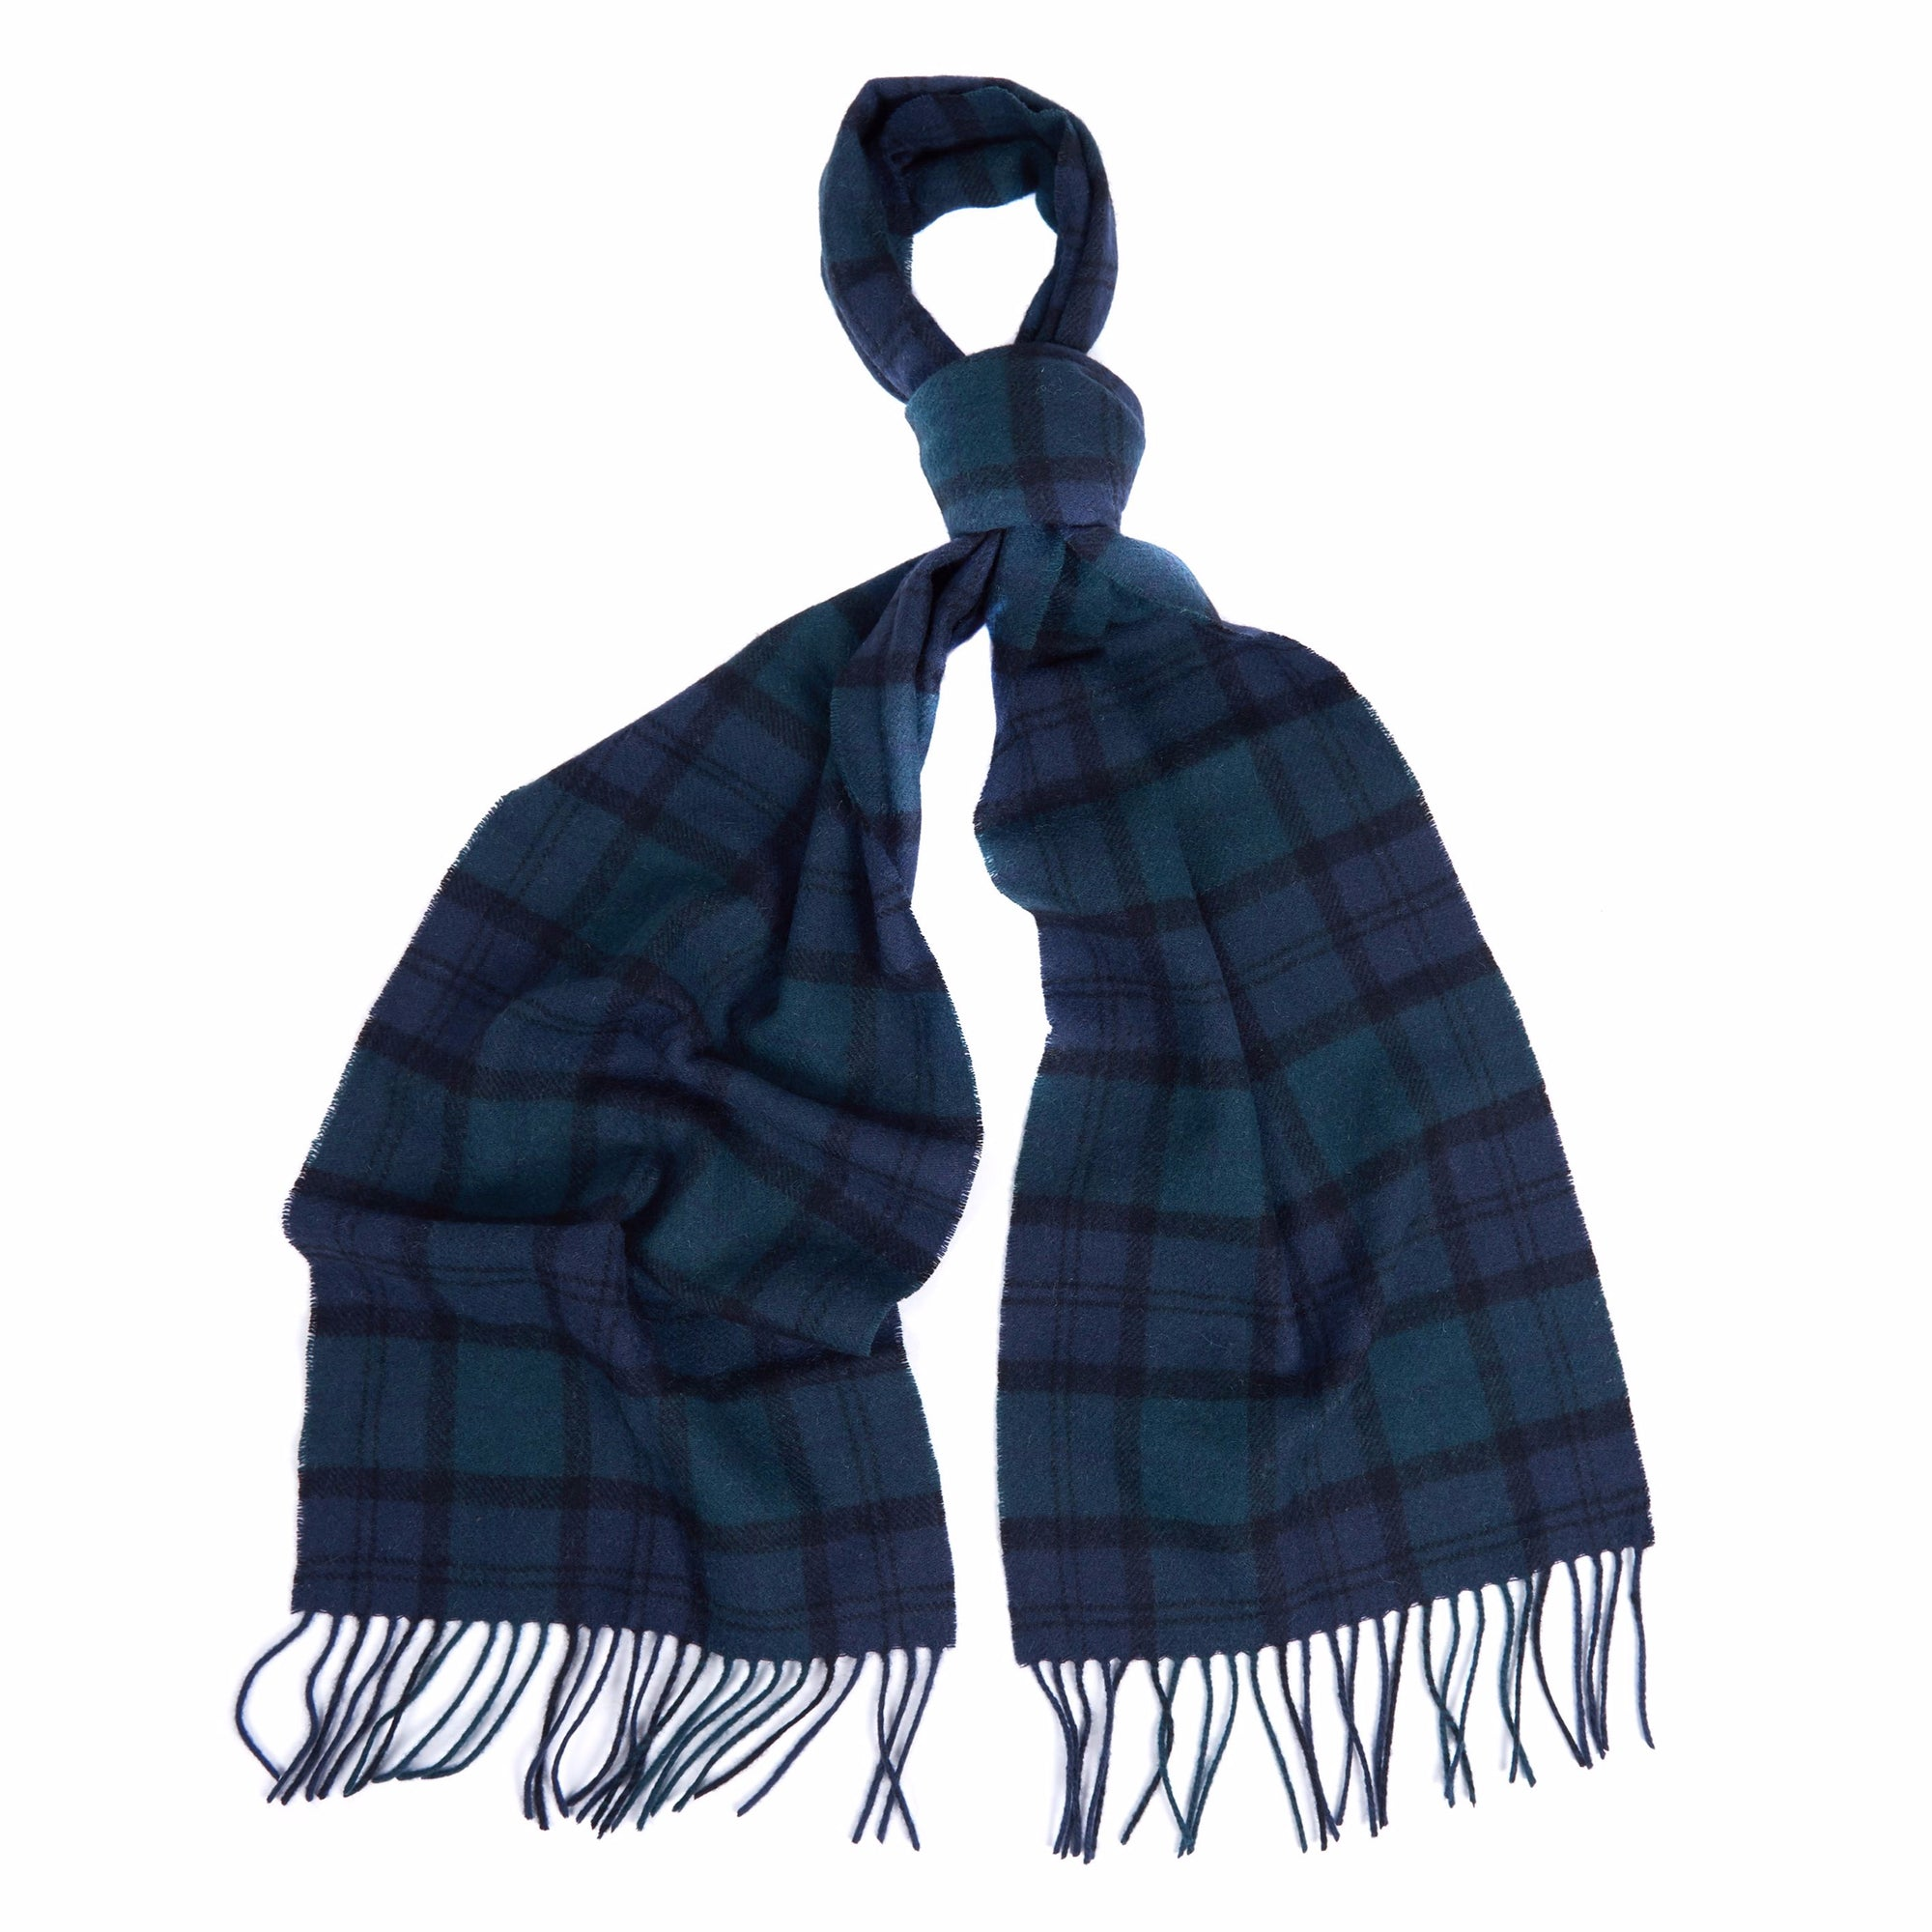 Barbour Tartan Lambswool Scarf - Blackwatch